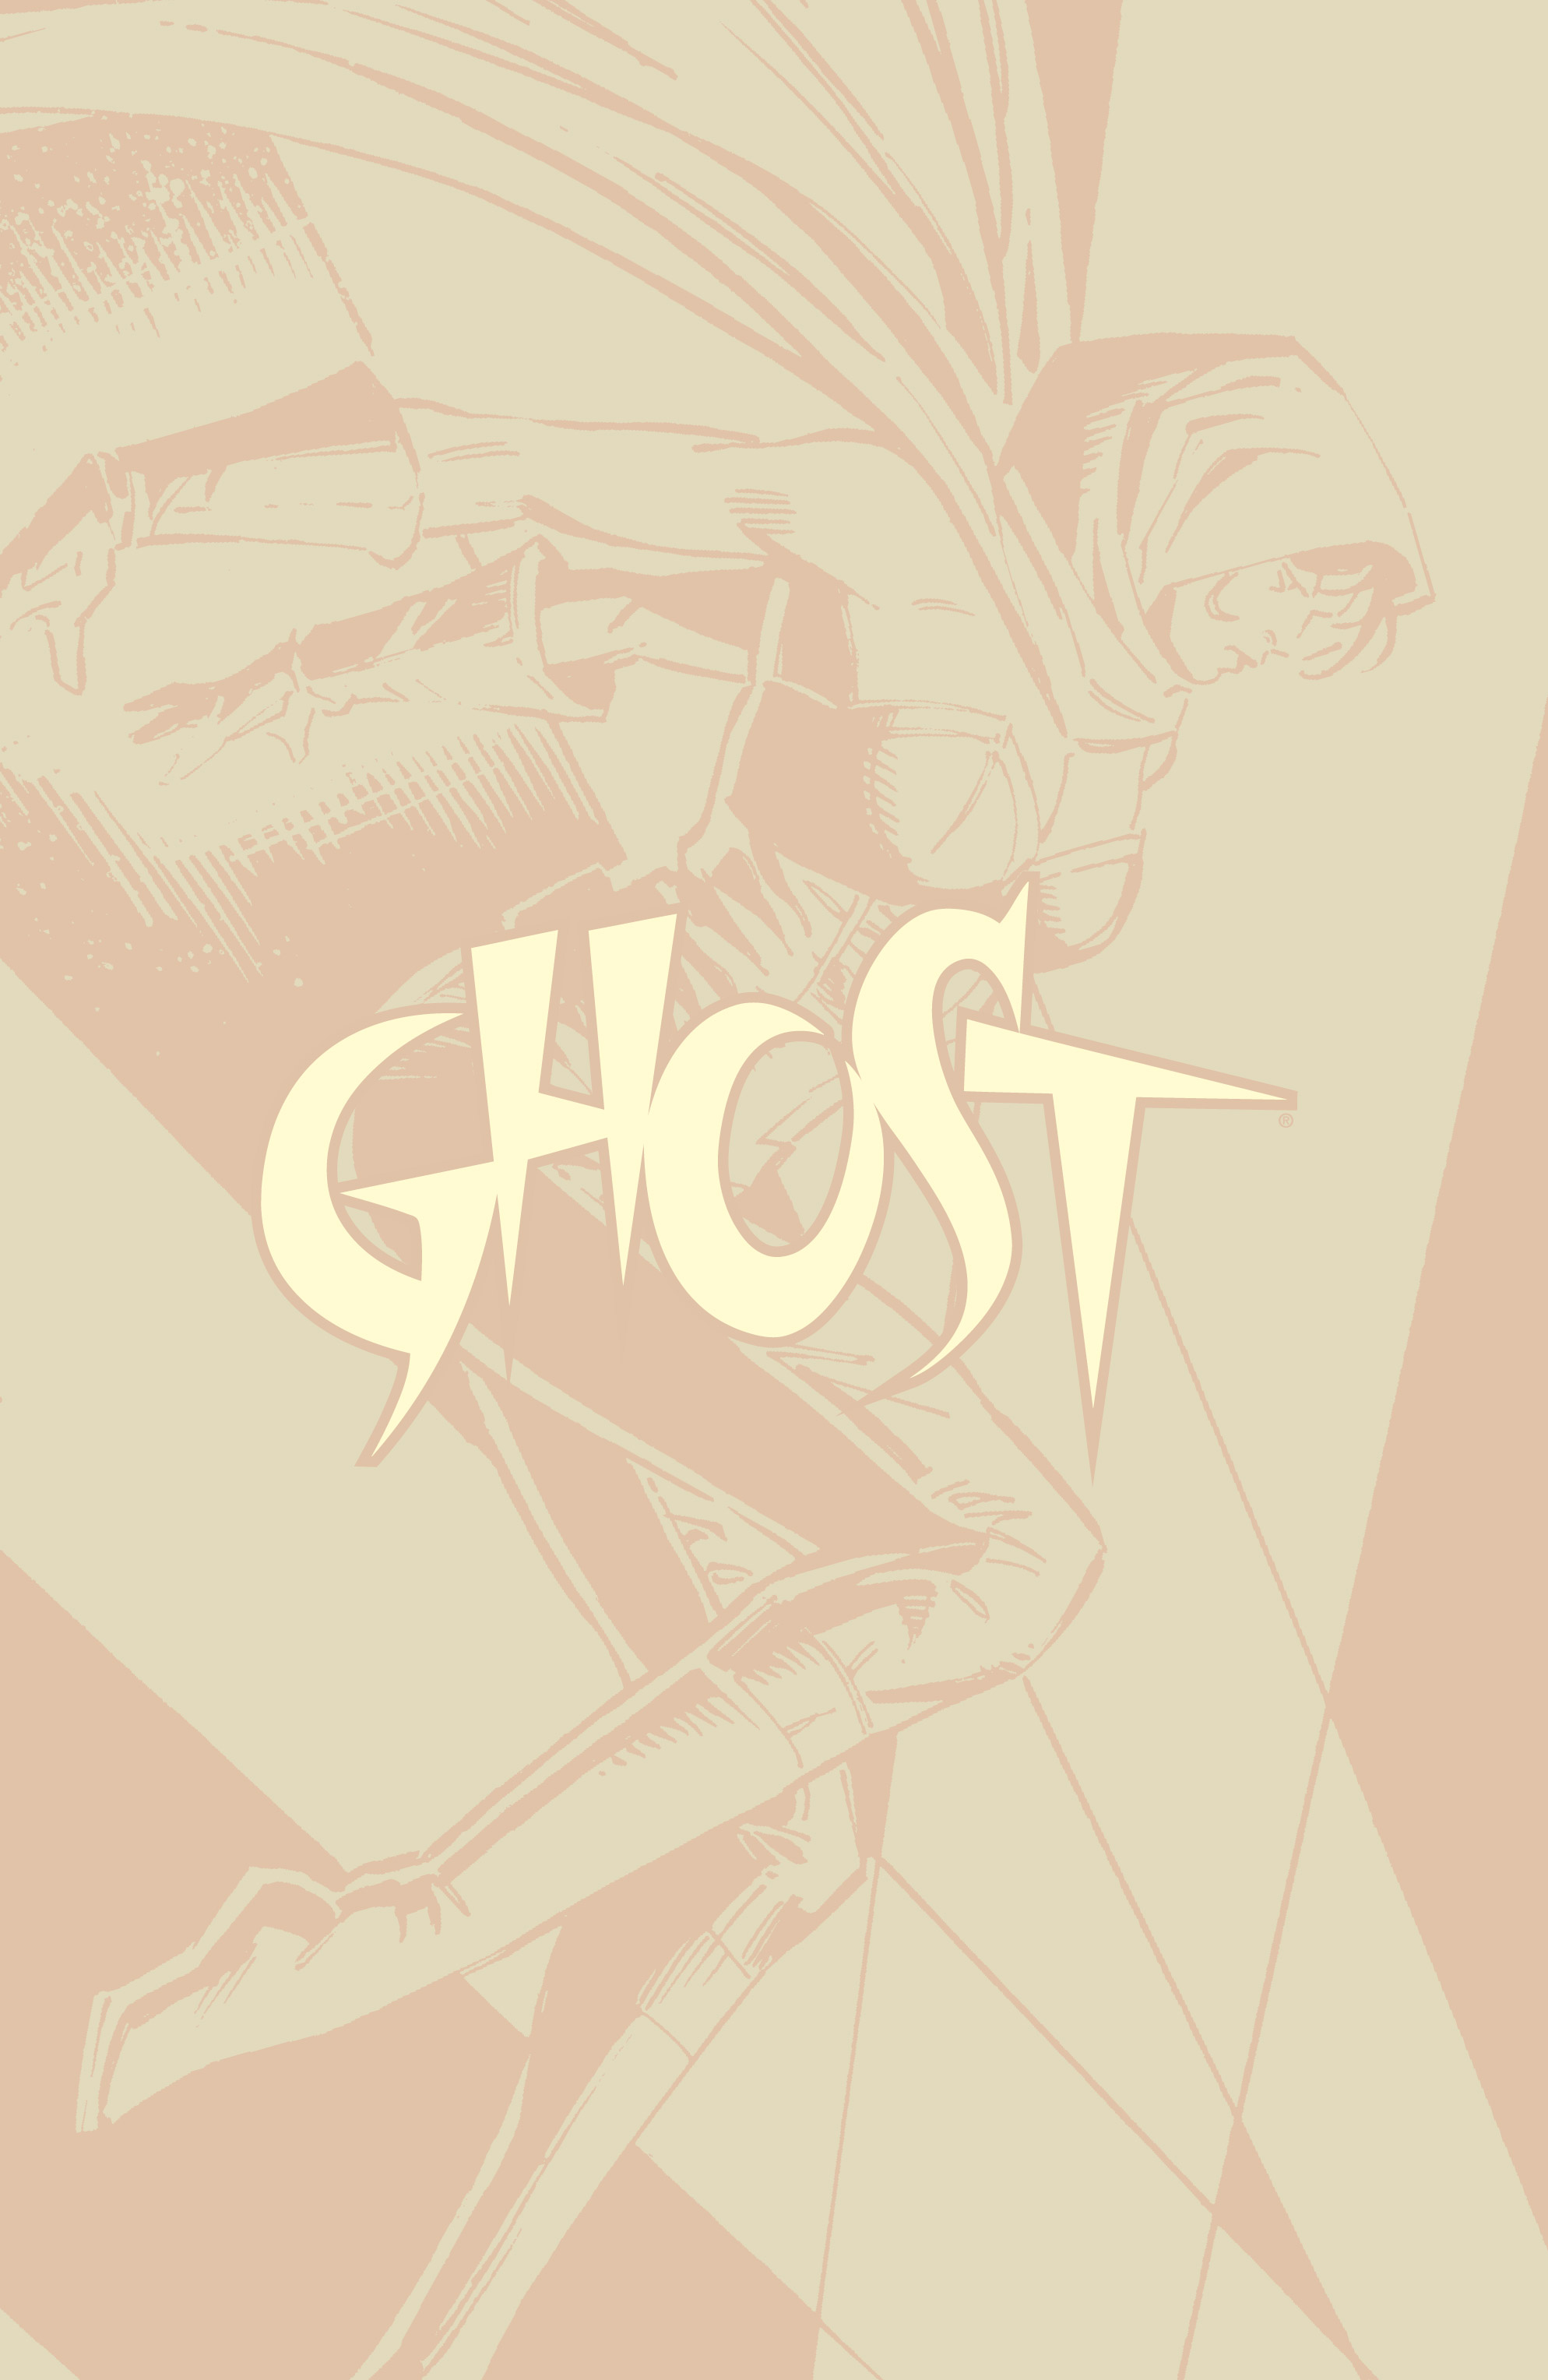 Read online Ghost (2013) comic -  Issue # TPB 2 - 55